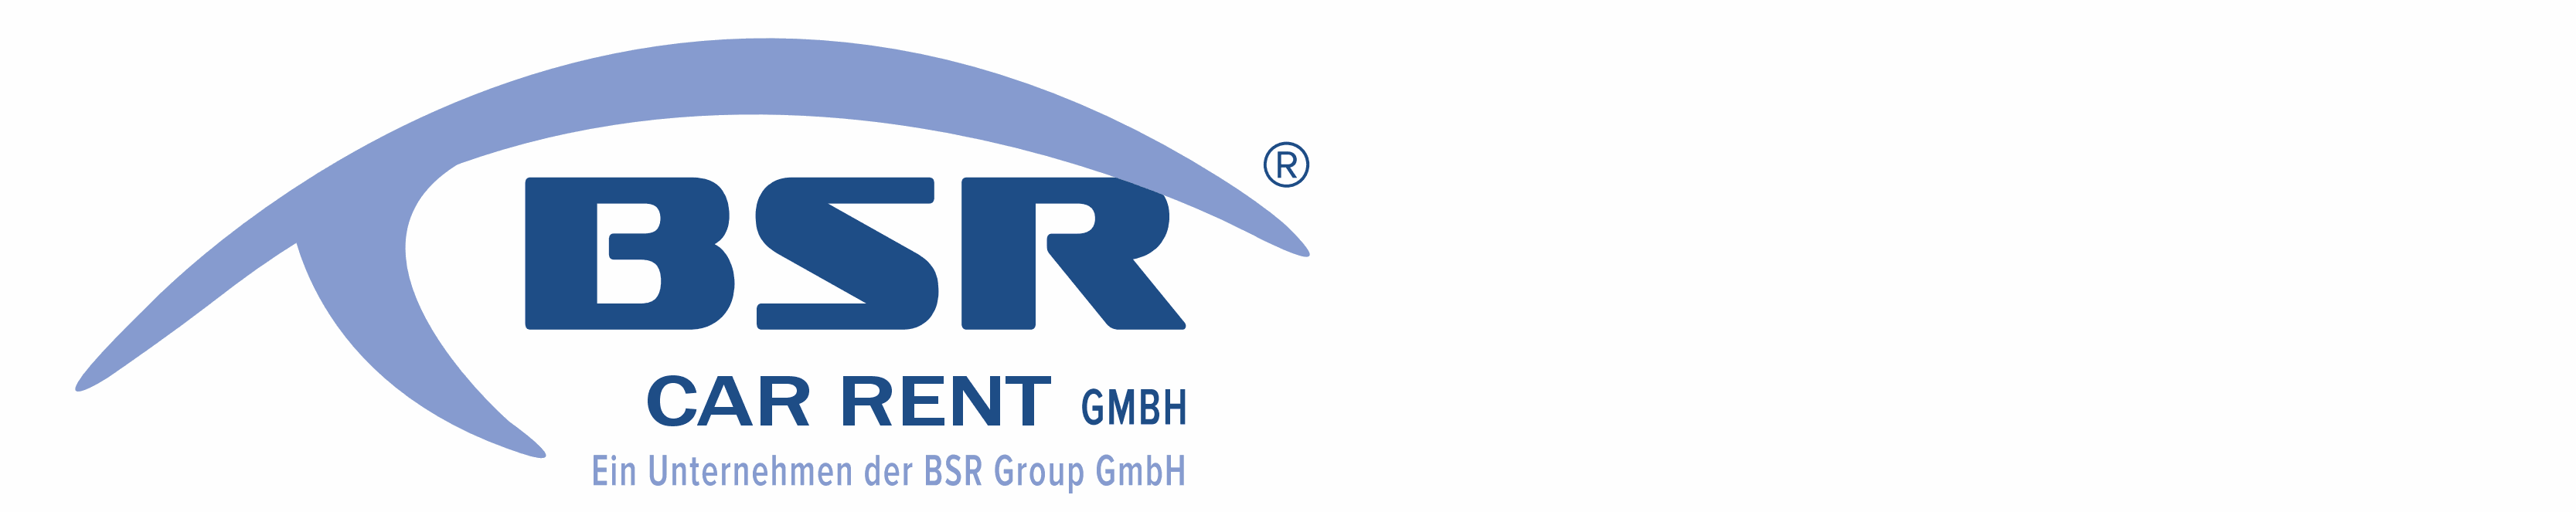 BSR Car Rent GmbH